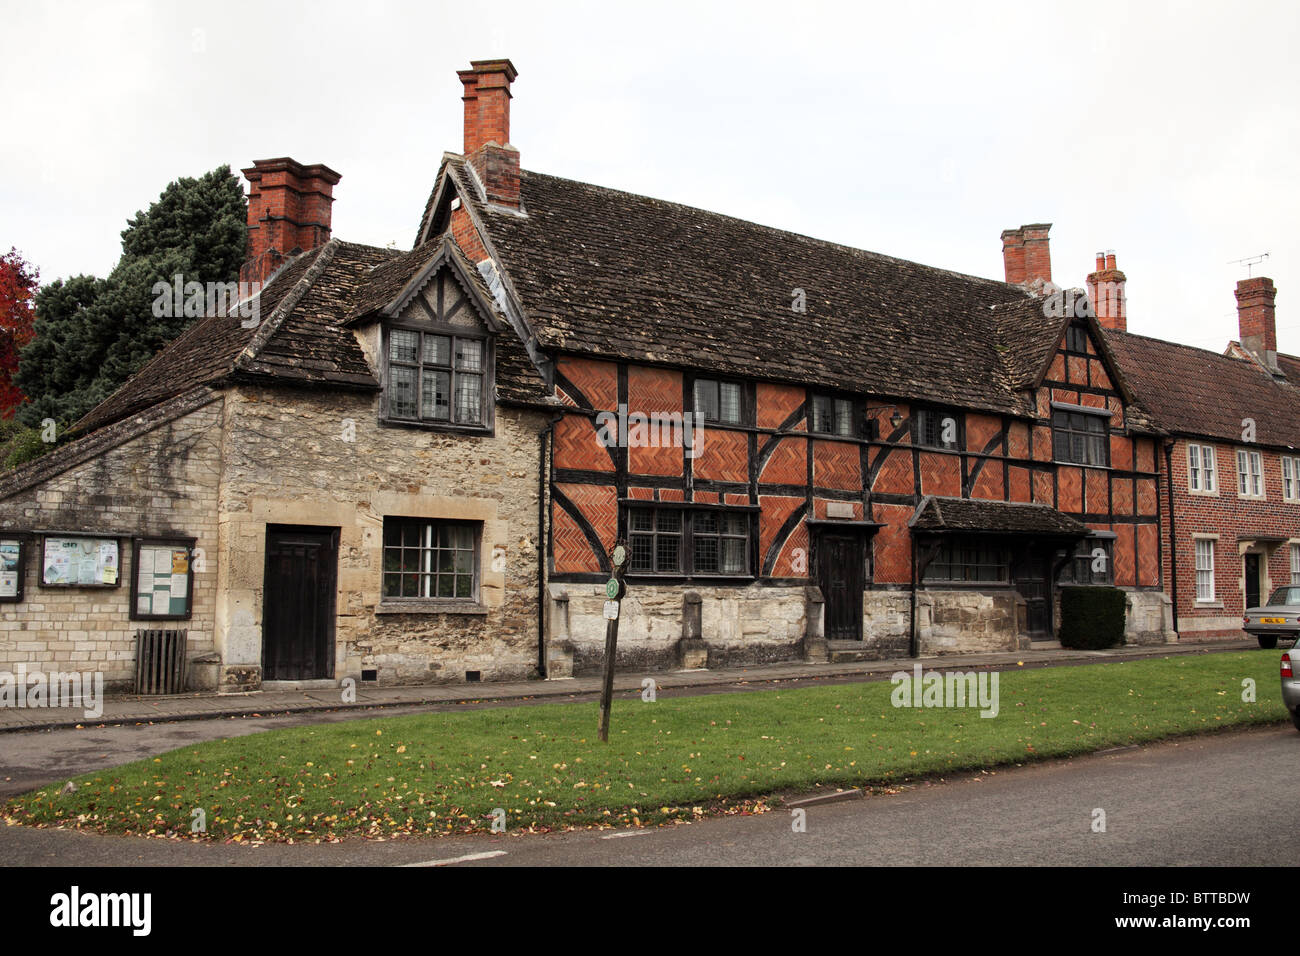 Circa Mid 16th Century timber framed cottage, Steeple Ashton, Wiltshire, England - Stock Image